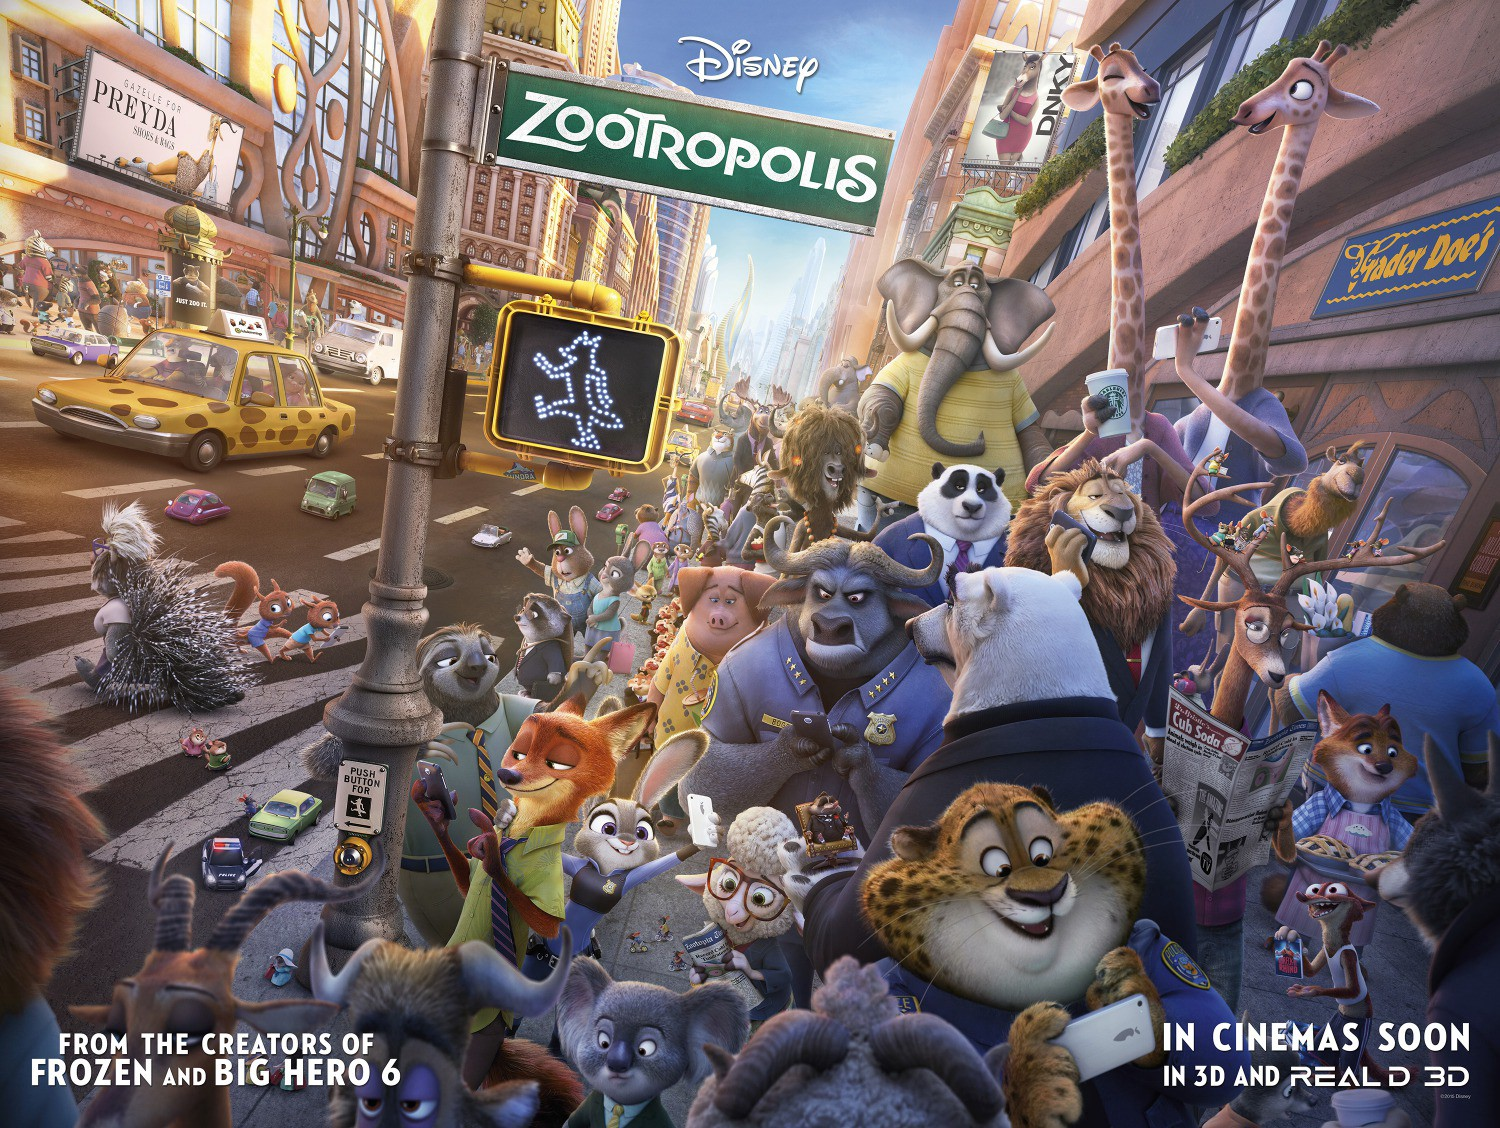 an analysis of the film zootopia Zootopia might not take the political stance that you think it does i think the movie makes the most sense if viewed as mockery and contempt for social justice activists, but with enough lip service to (apparently) sneak it under their very noses.